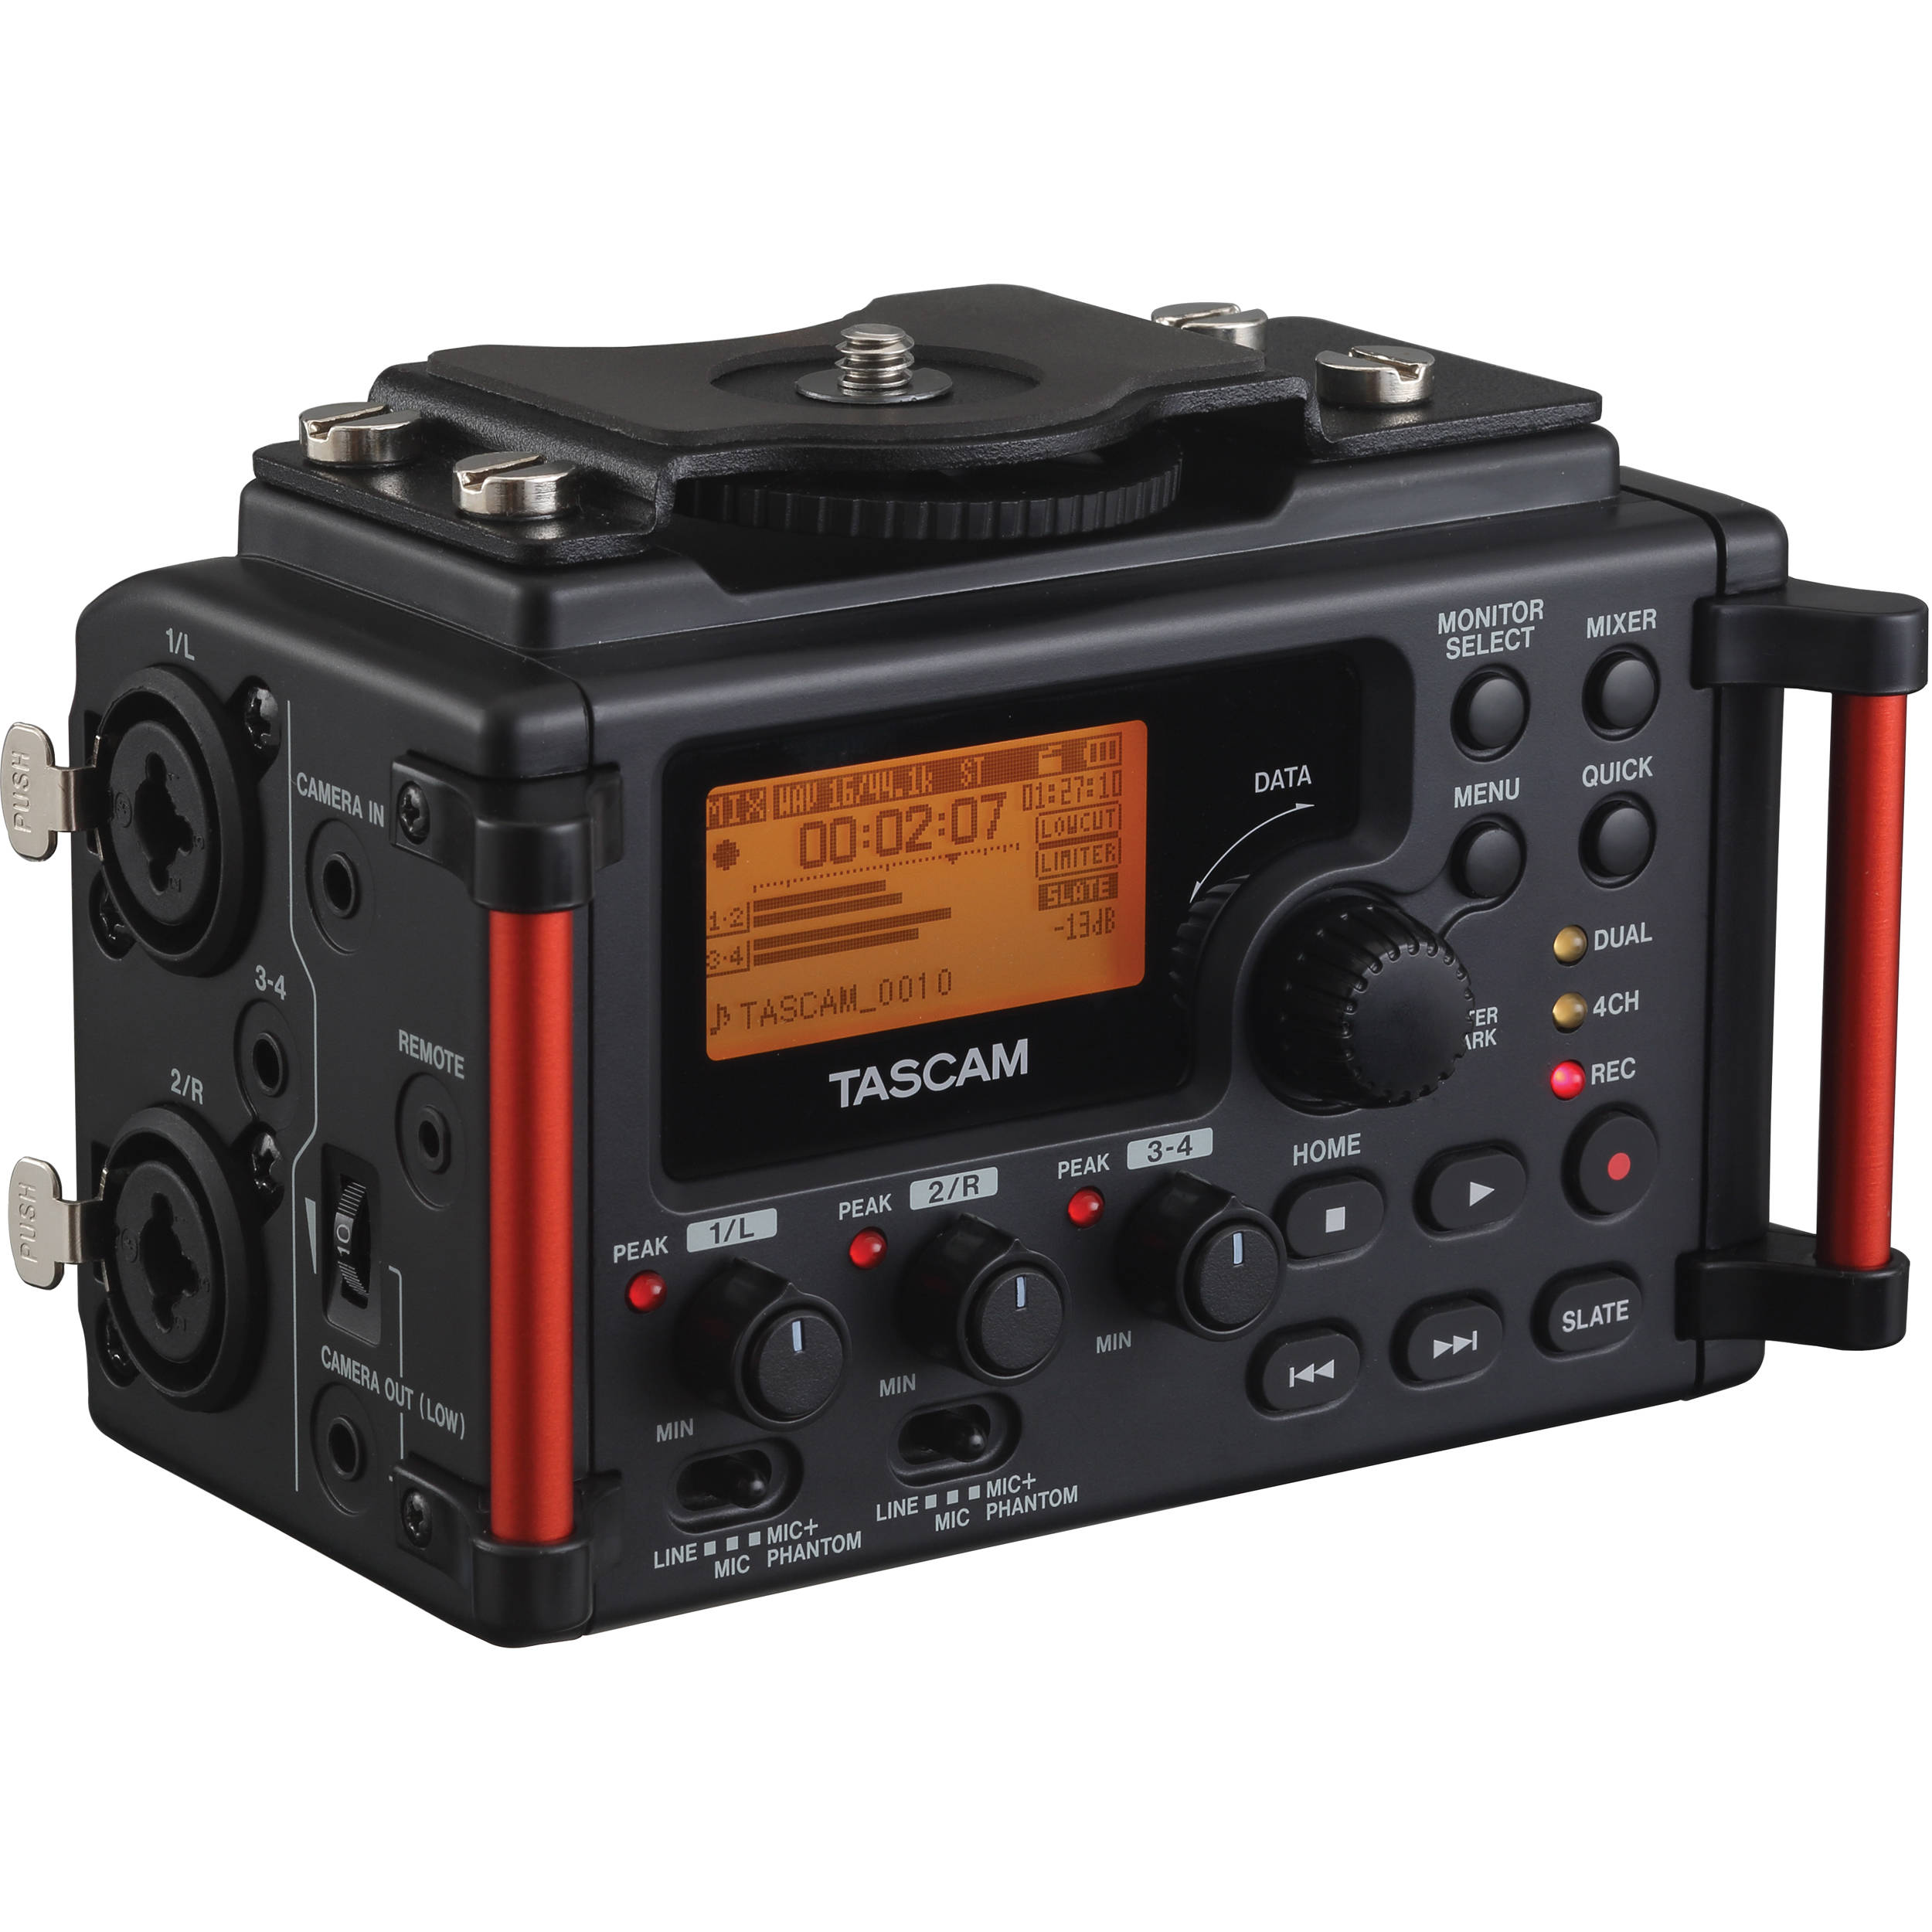 Portable Audio Digital Recorders Bh Photo Video Preamplifier Line Driver Tascam Dr 60dmkii 4 Channel Recorder For Dslr